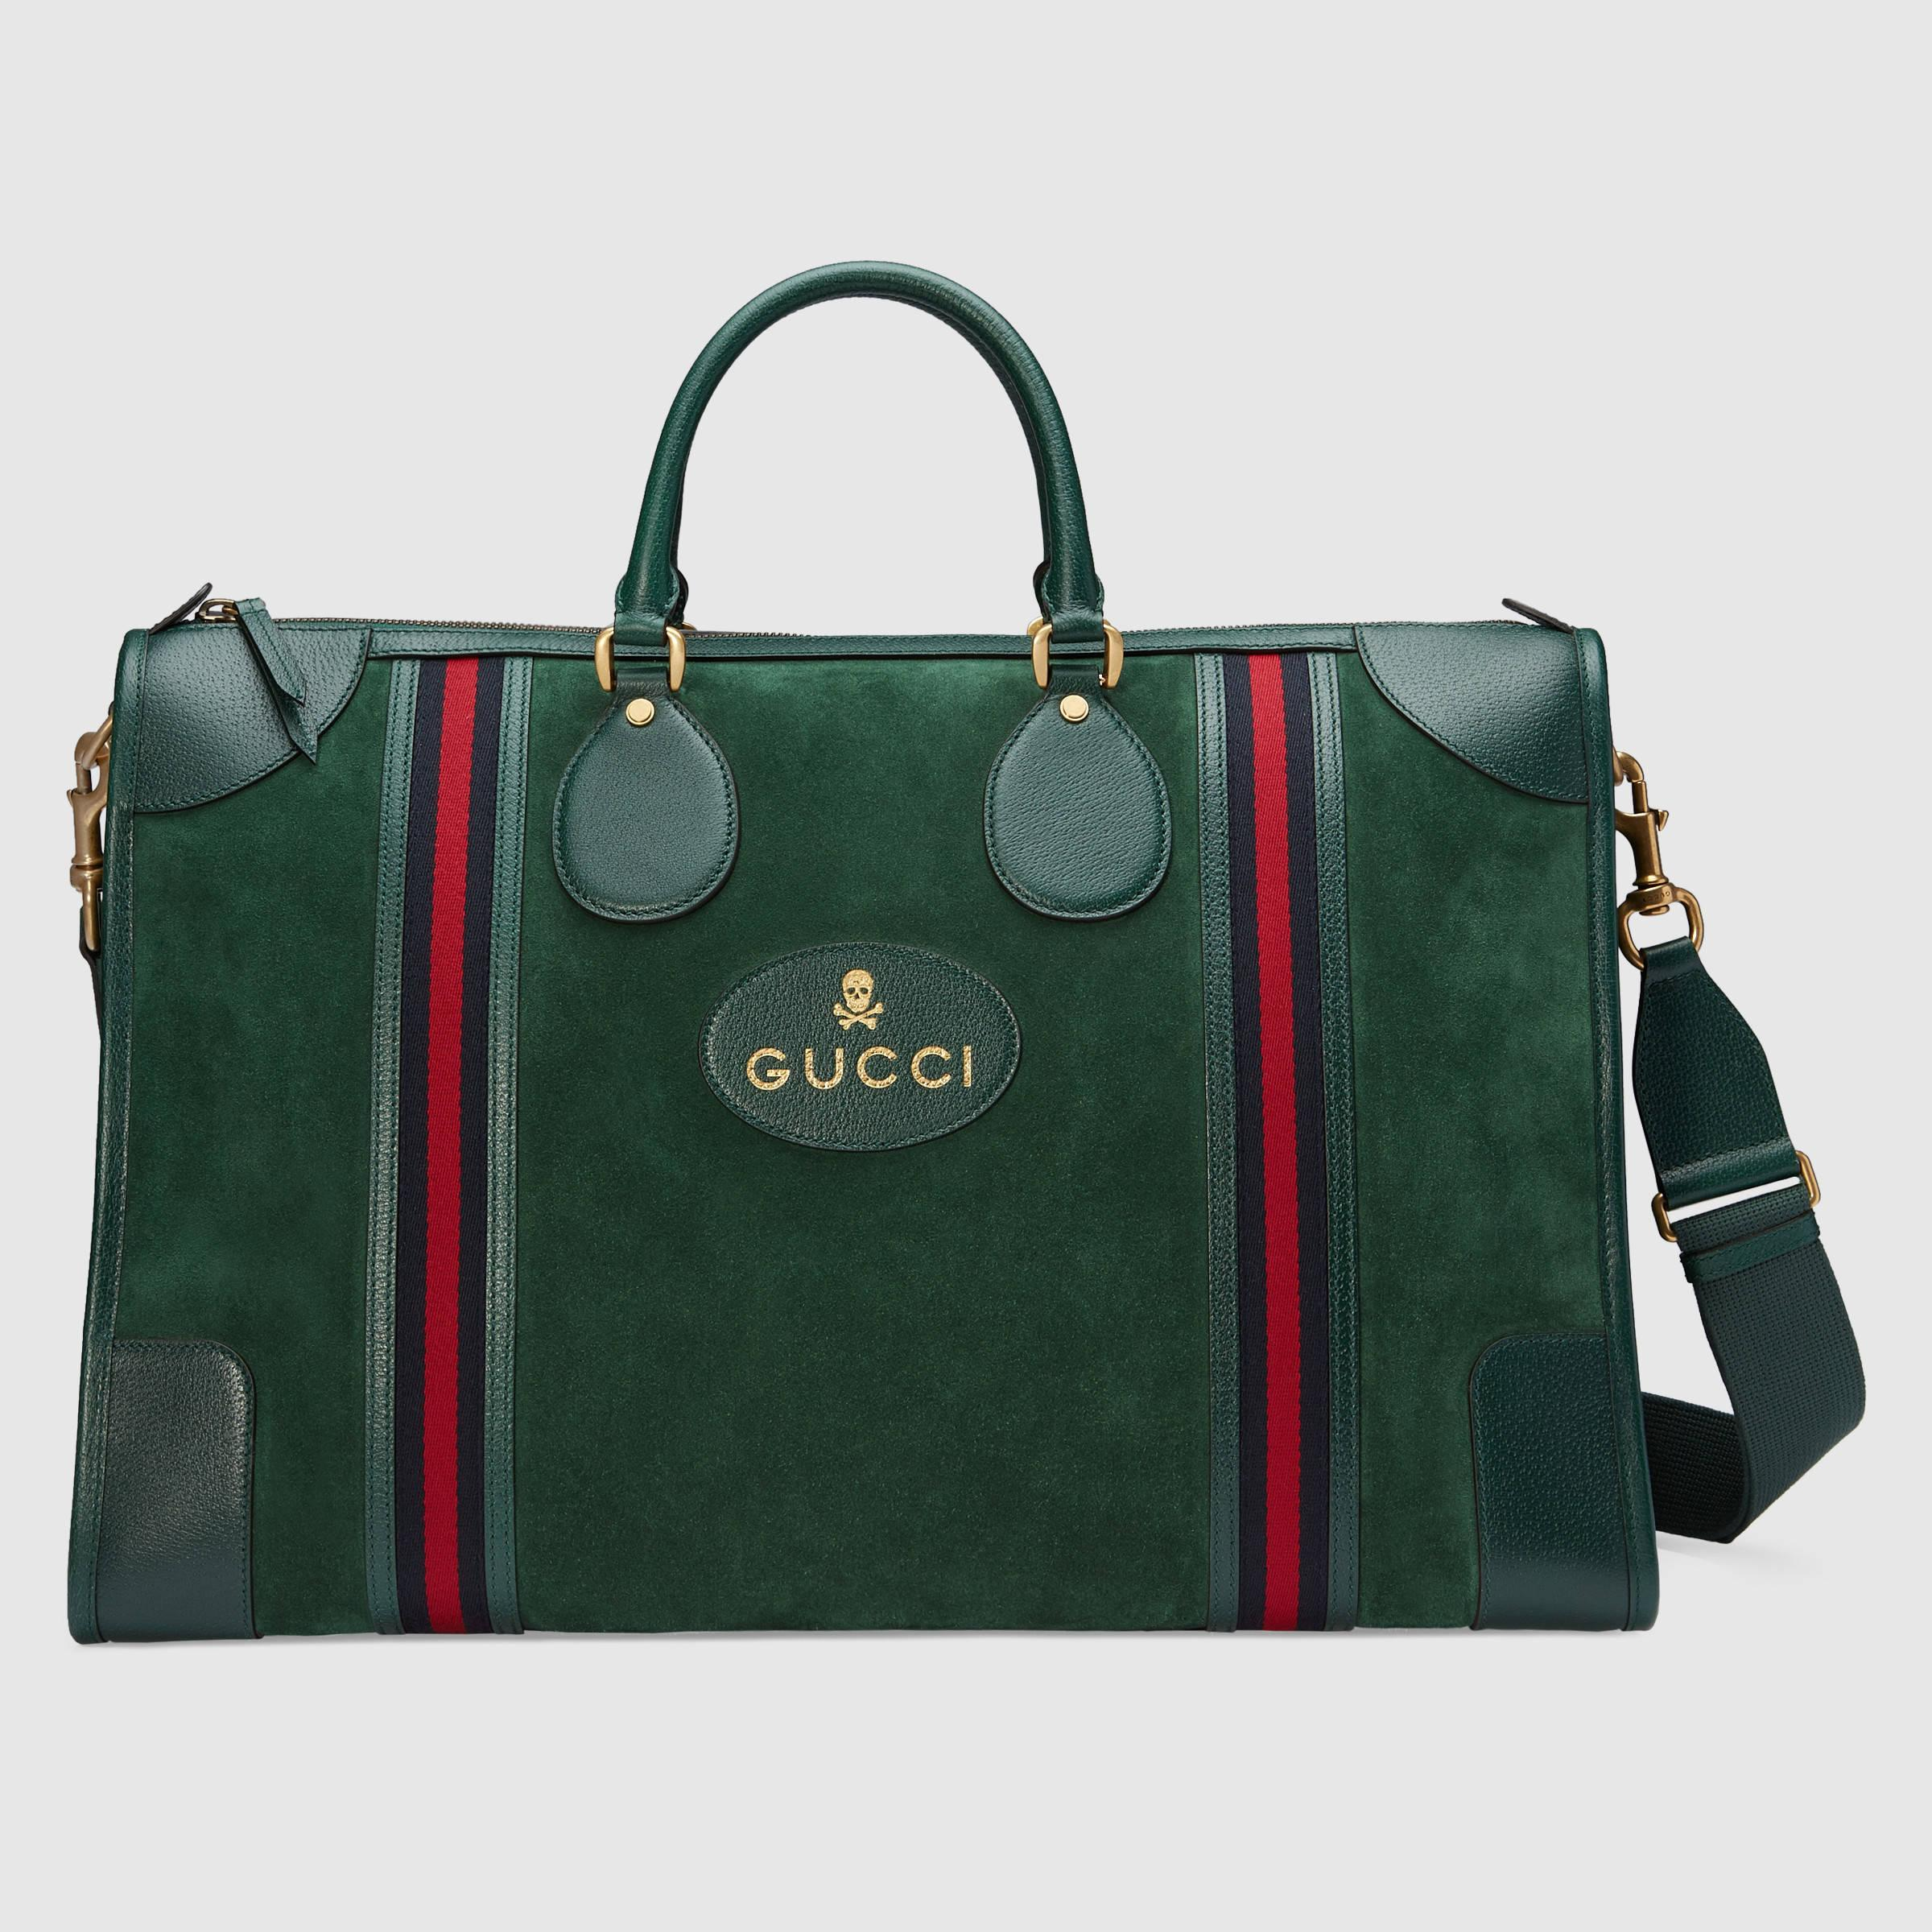 100a8fef8eed Gucci Suede Duffle Bag With Web in Green - Lyst